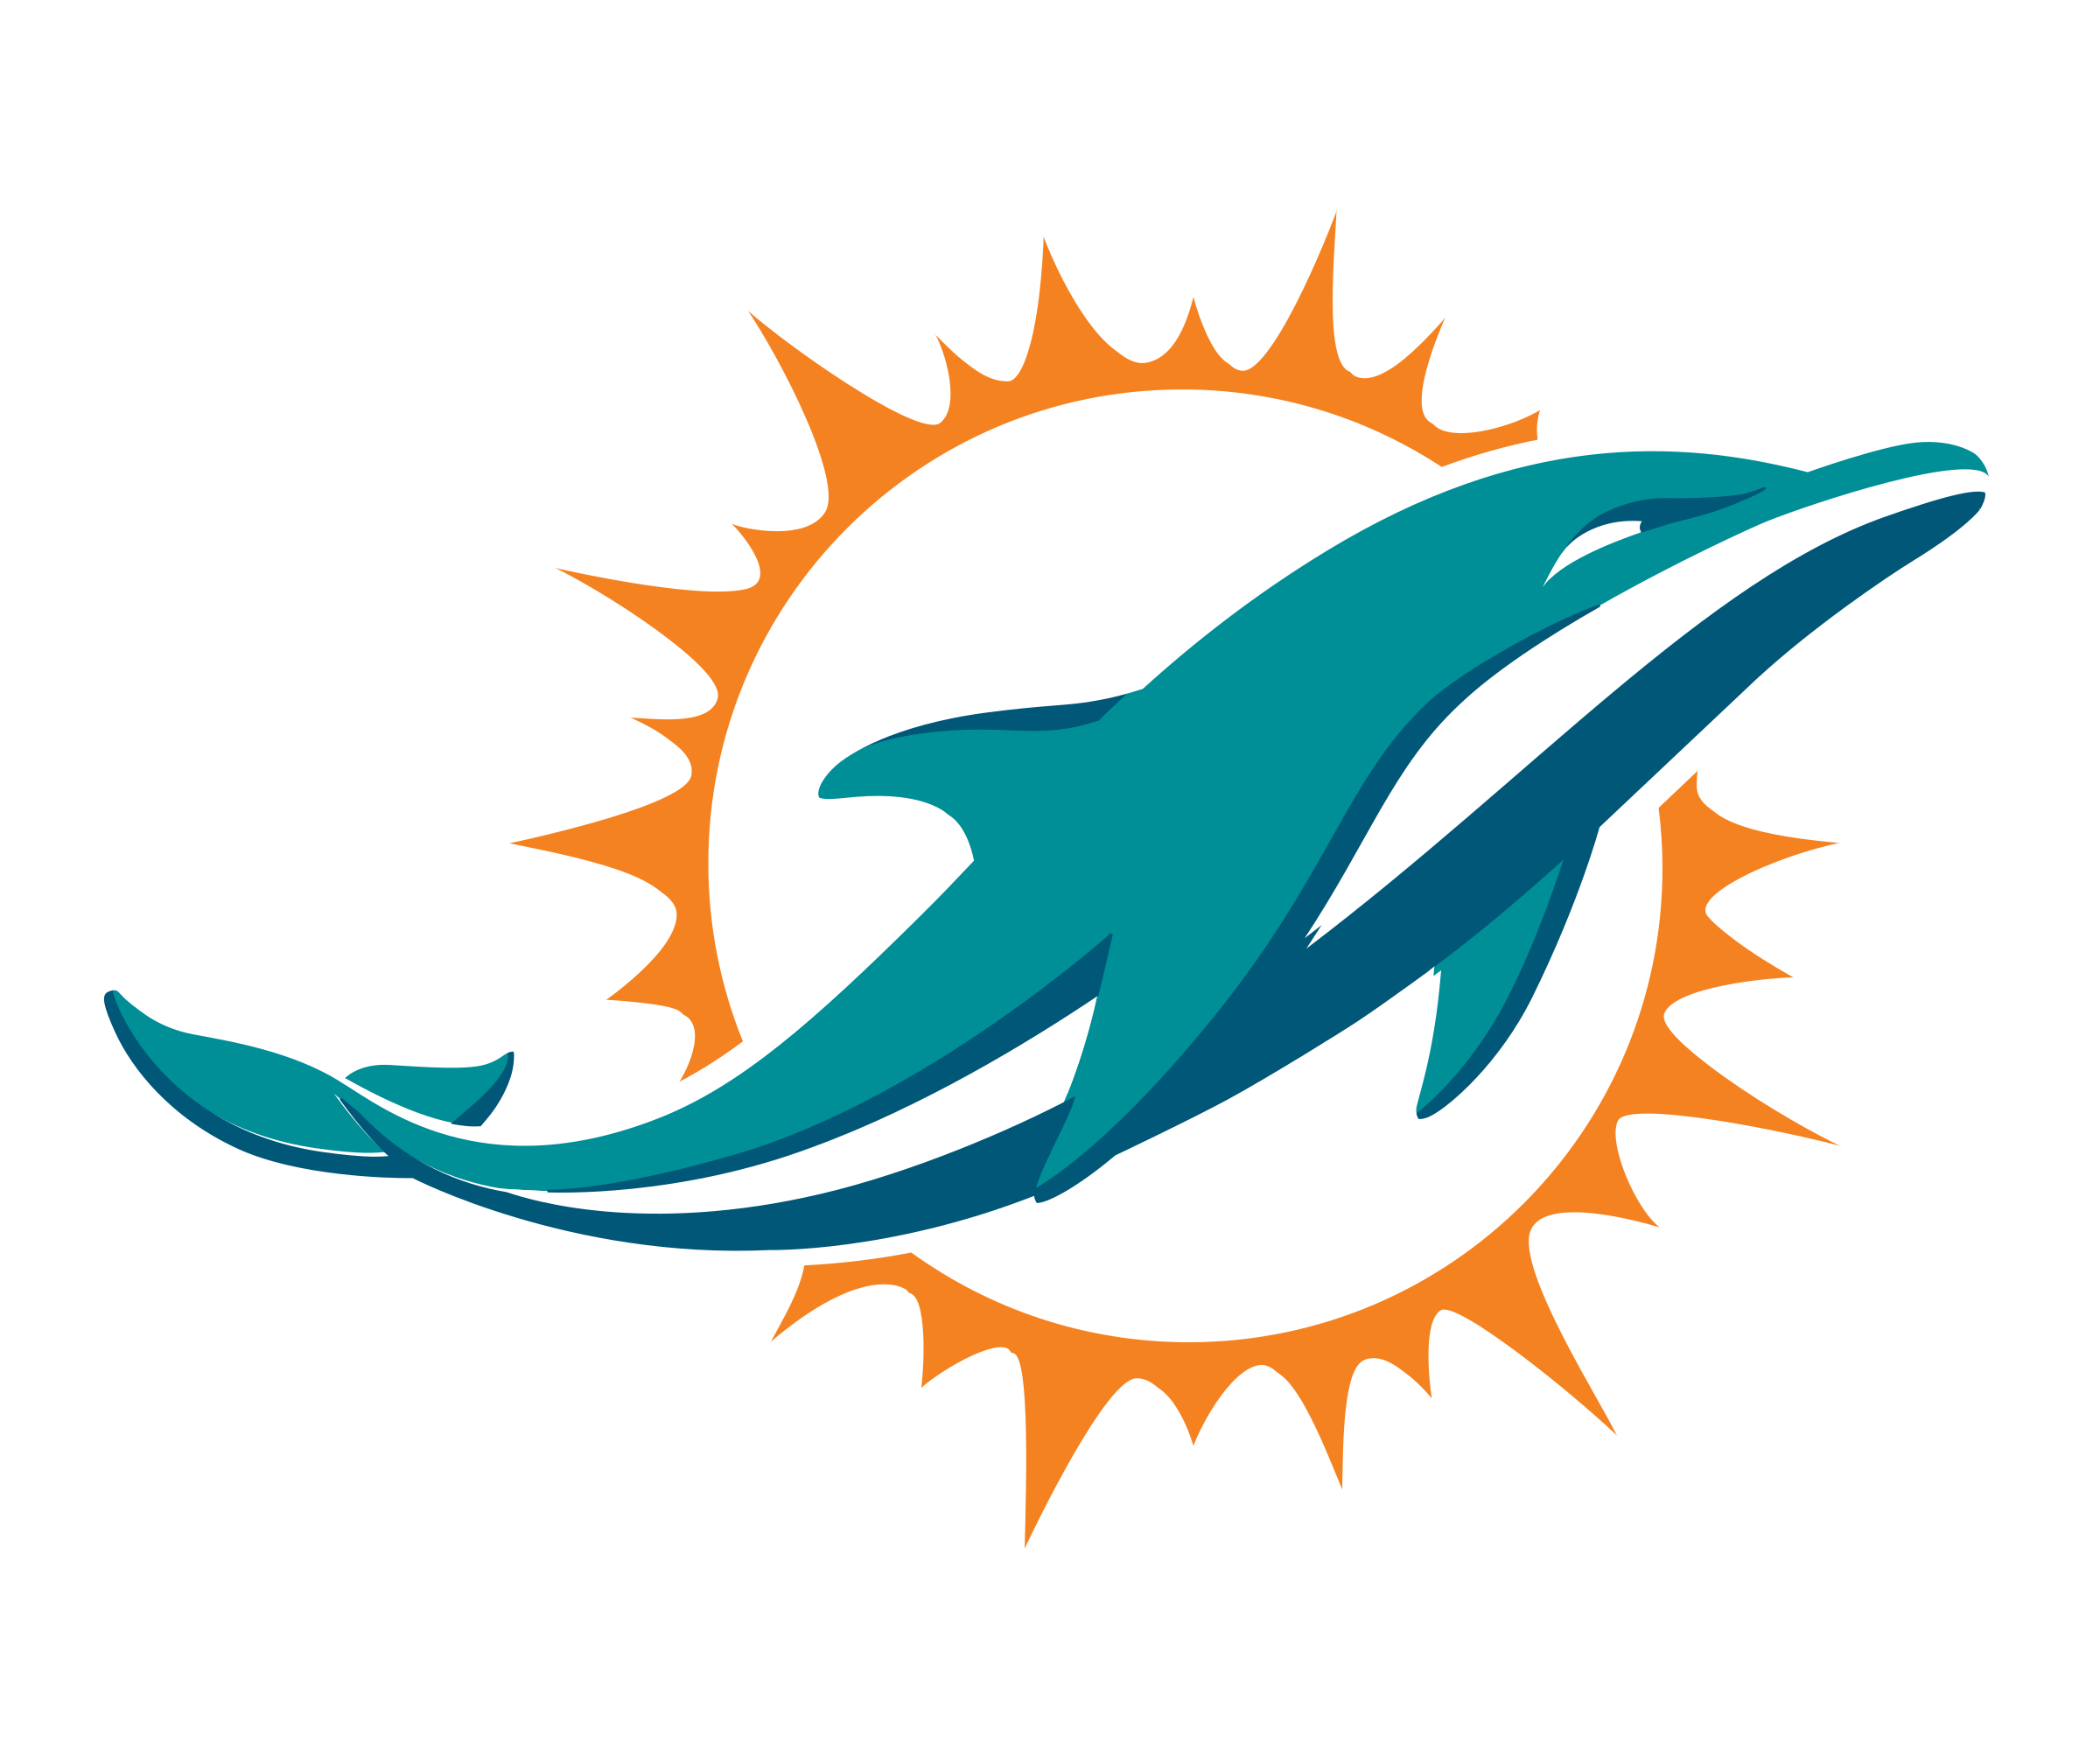 image library stock Vector dolphin logo. Miami dolphins png transparent